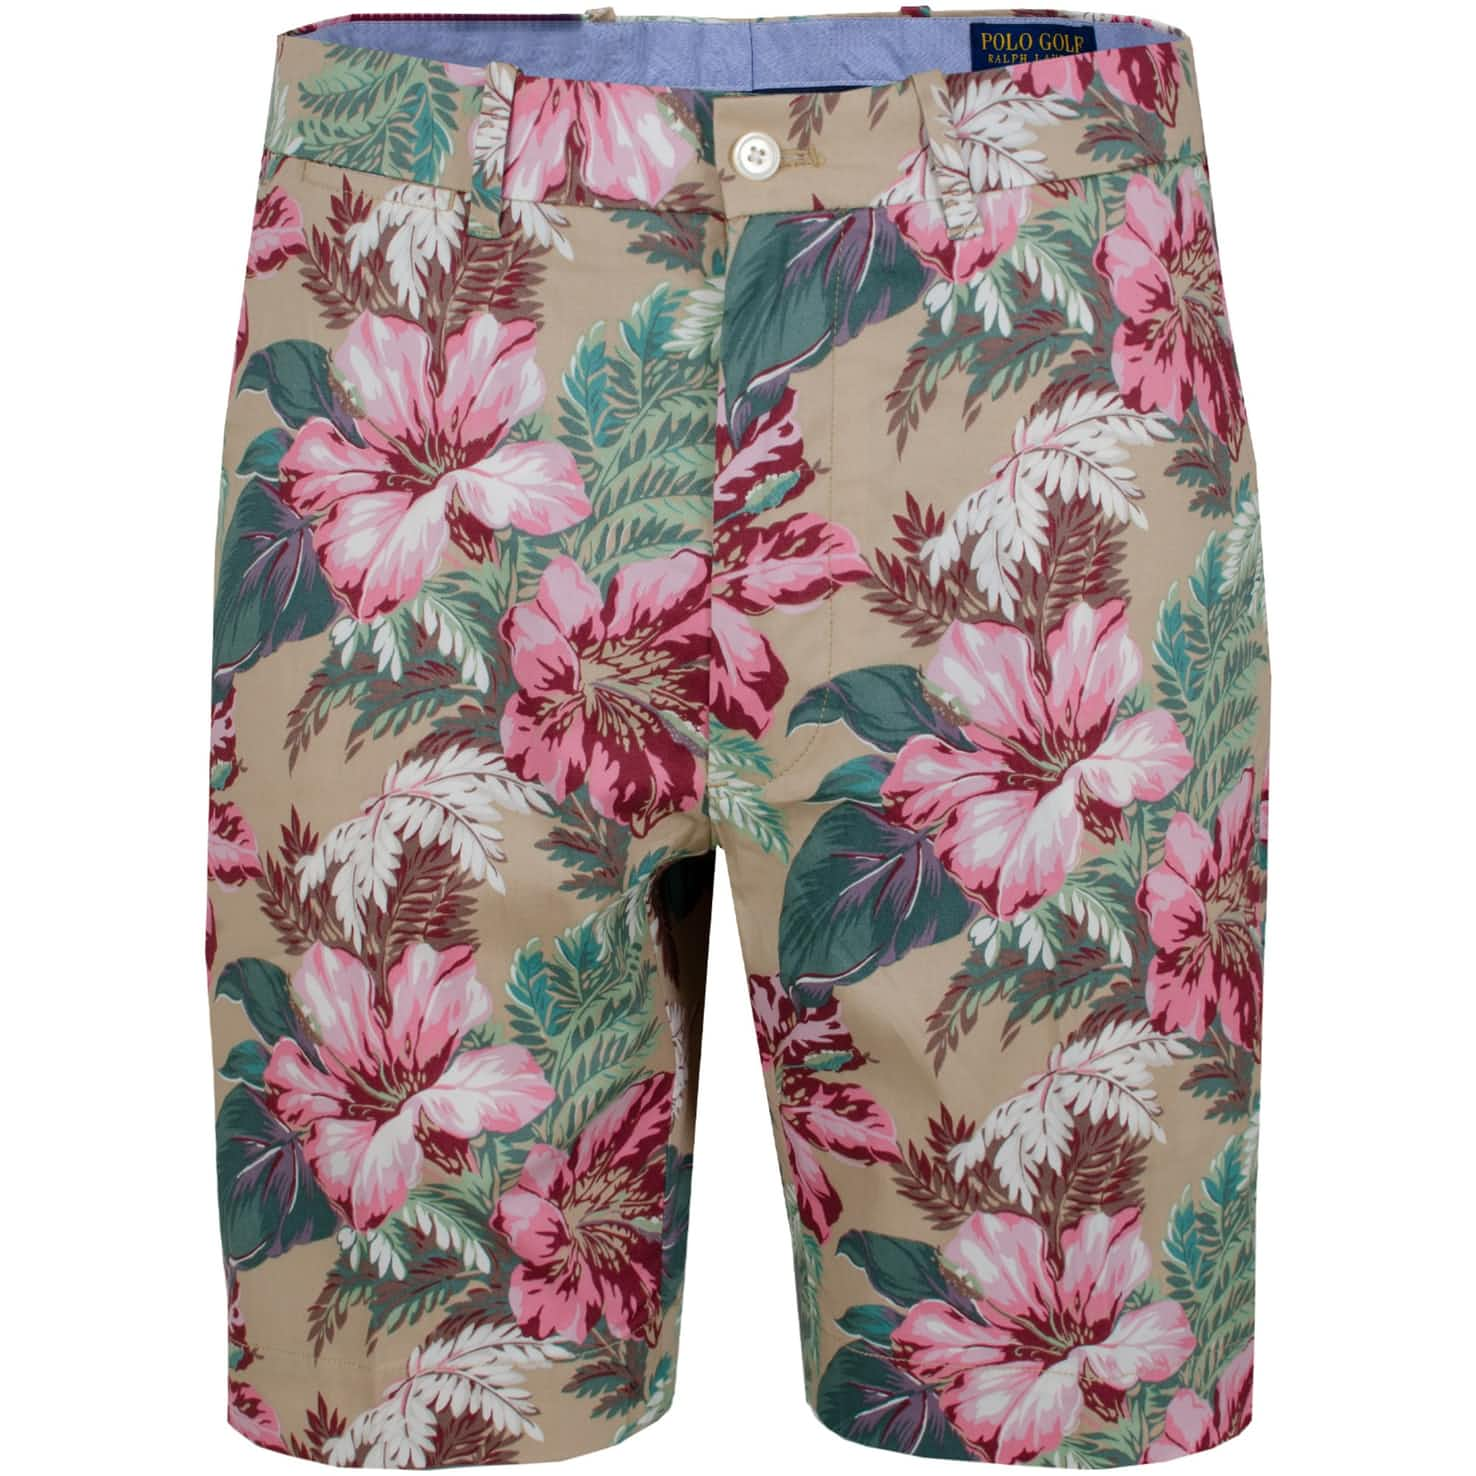 Cotton Stretch Shorts Wild Hibiscus - SS20